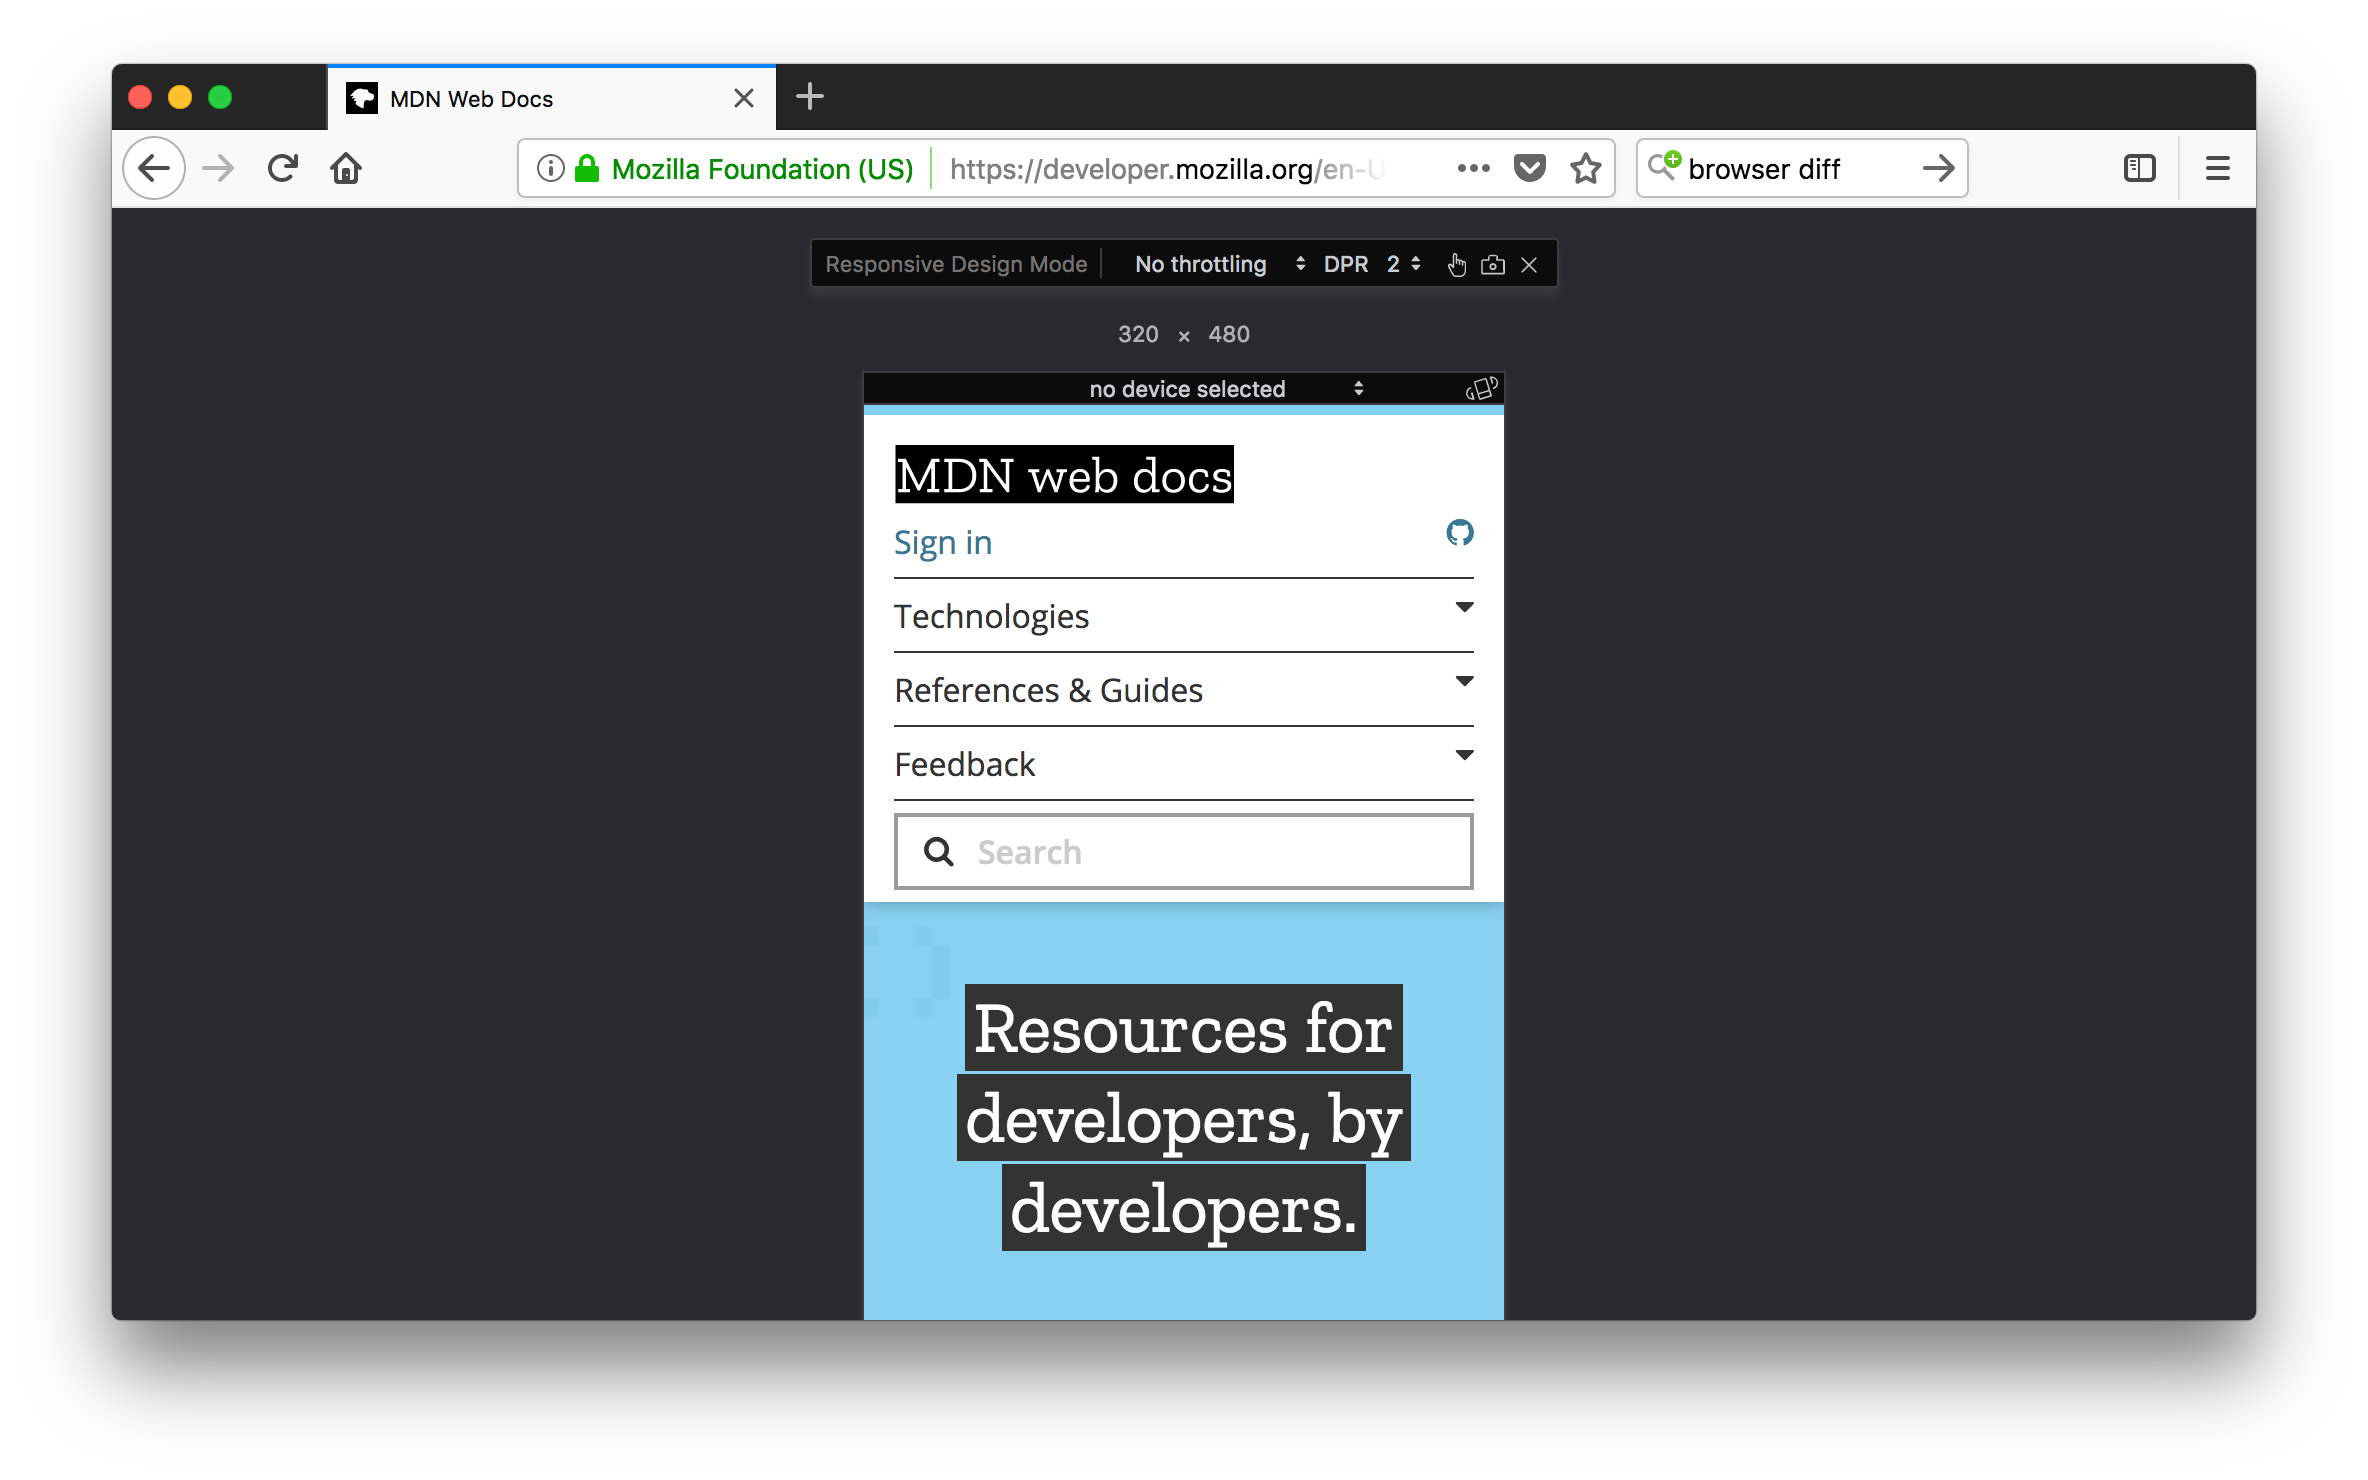 Responsive Design mode in Firefox 57.